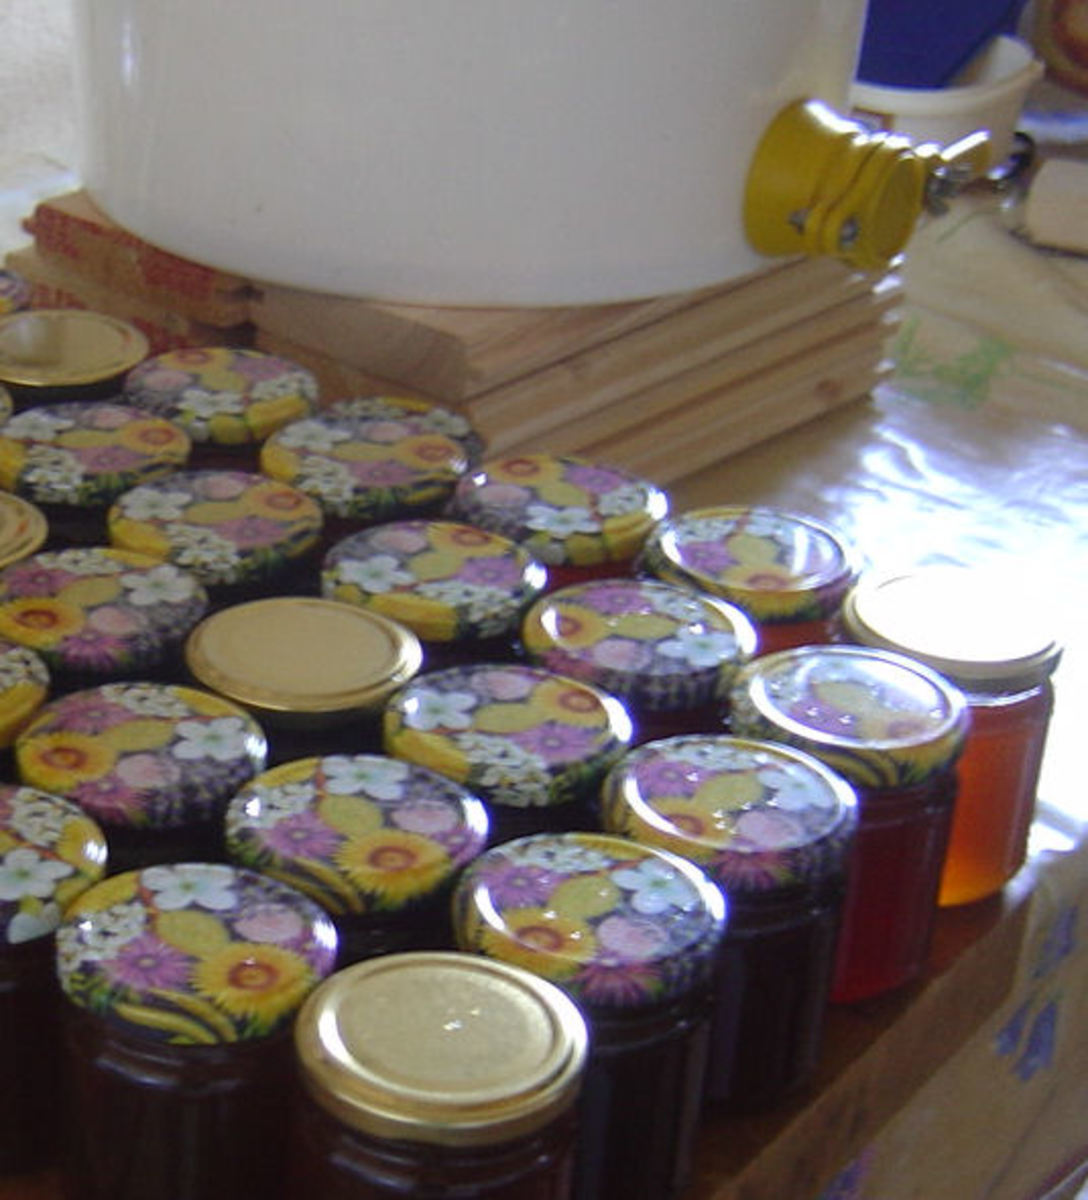 When you produce your own honey you will know that it is a first rate, natural and delicious product.